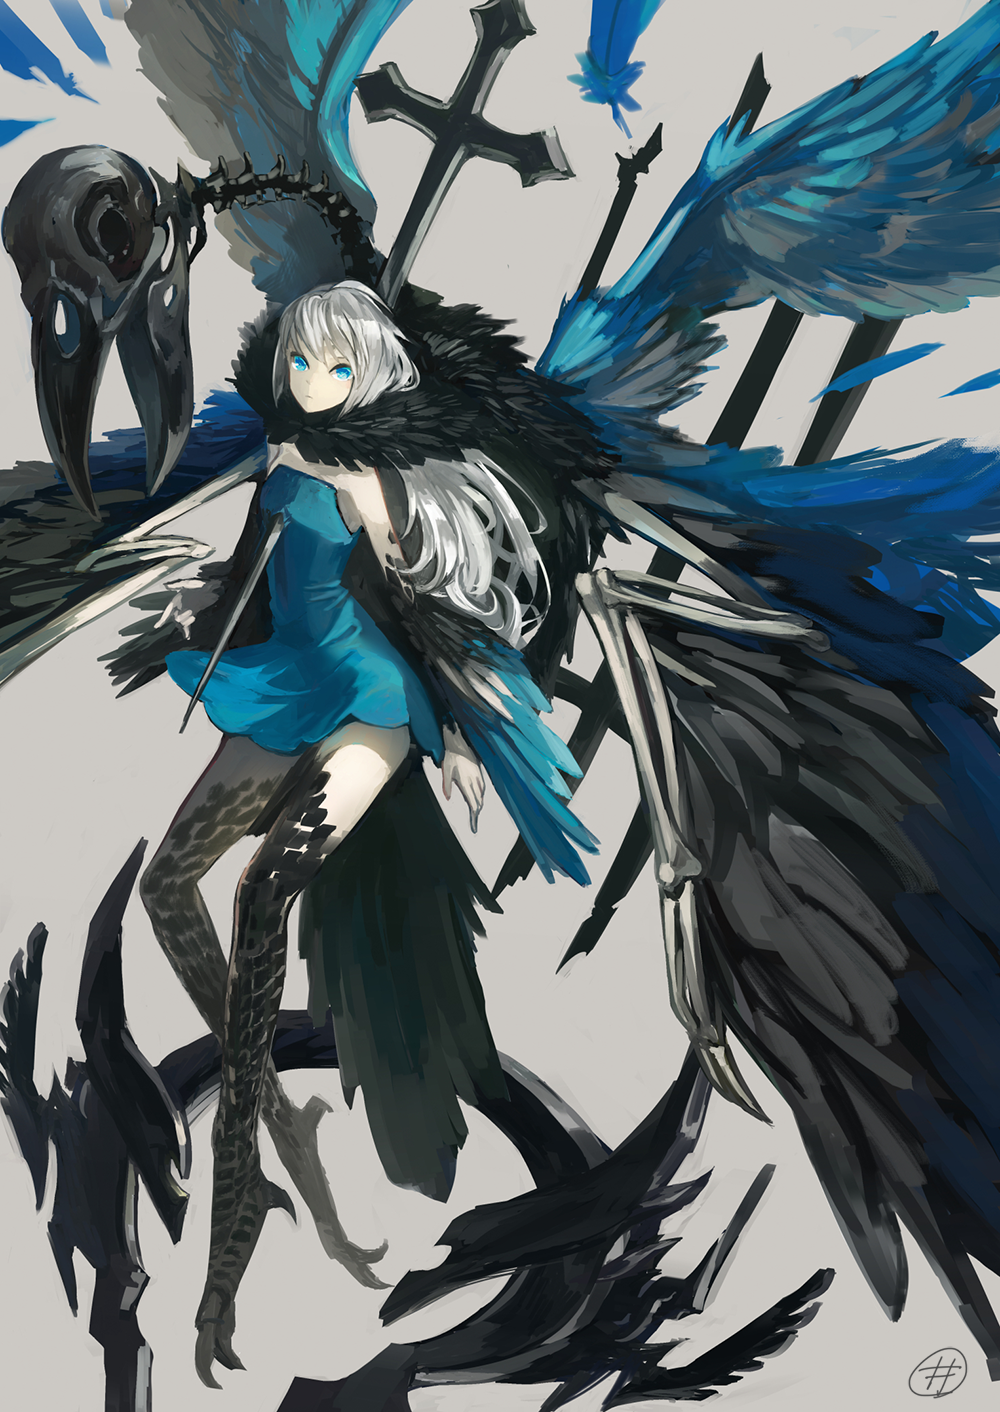 1girl bare_shoulders bird_skull black_wings blue_dress blue_eyes blue_feathers blue_wings closed_mouth cross dress feather_trim feathered_wings feathers flying grey_background highres impaled long_hair mrpk multiple_wings original signature simple_background skeleton solo talons white_hair wings